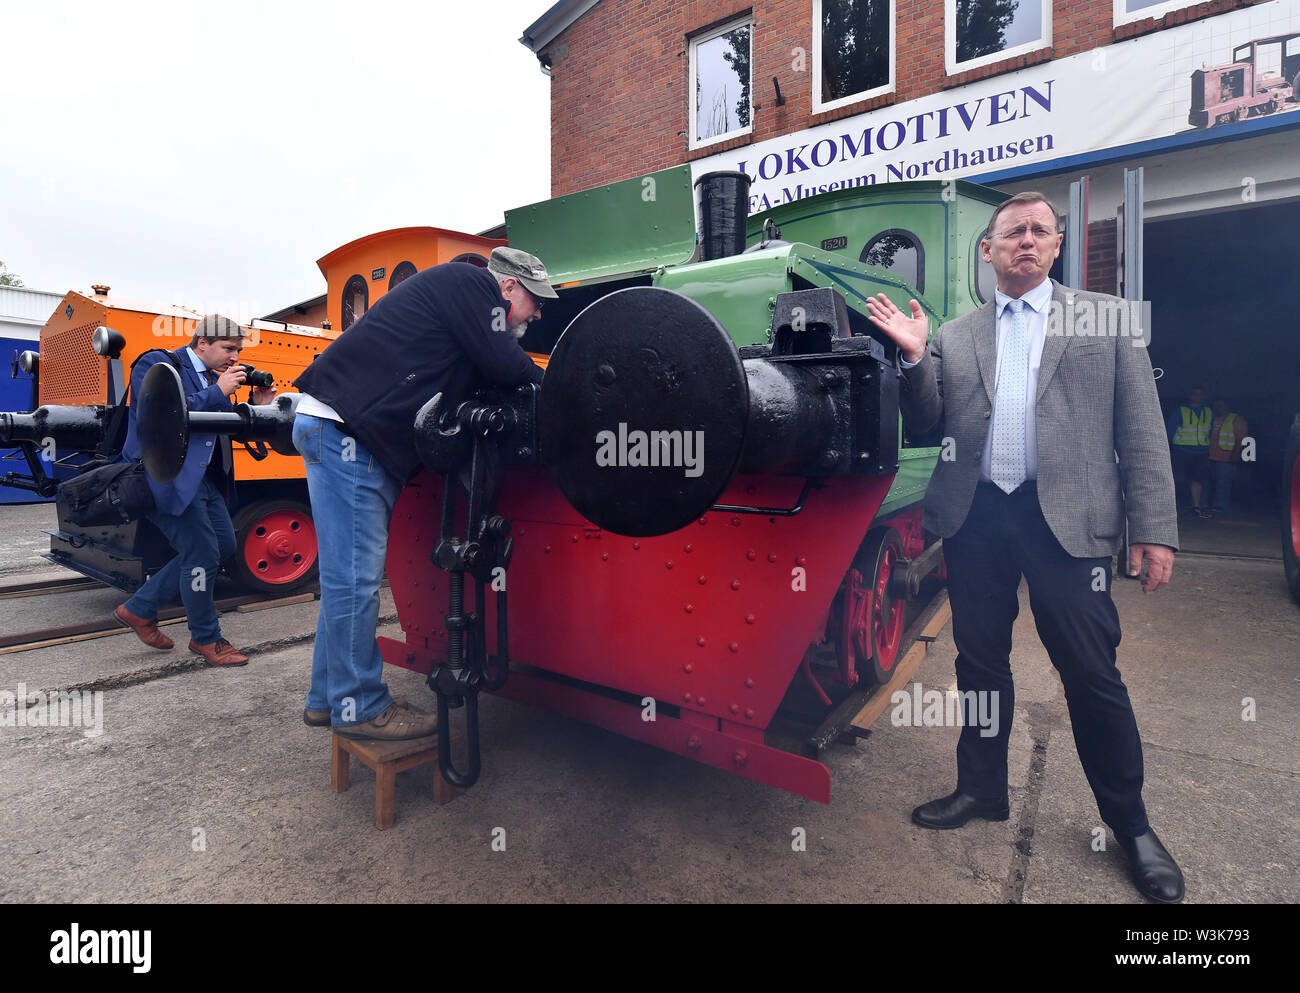 Nordhausen, Germany. 16th July, 2019. Bodo Ramelow (Die Linke), Prime Minister of Thuringia, visits the IFA Museum next to a 1922 petrol shunting locomotive. Ramelow's multi-day summer tour is entitled '#FutureThuringia - Clever minds, innovative processes'. Credit: Martin Schutt/dpa-Zentralbild/dpa/Alamy Live News - Stock Image